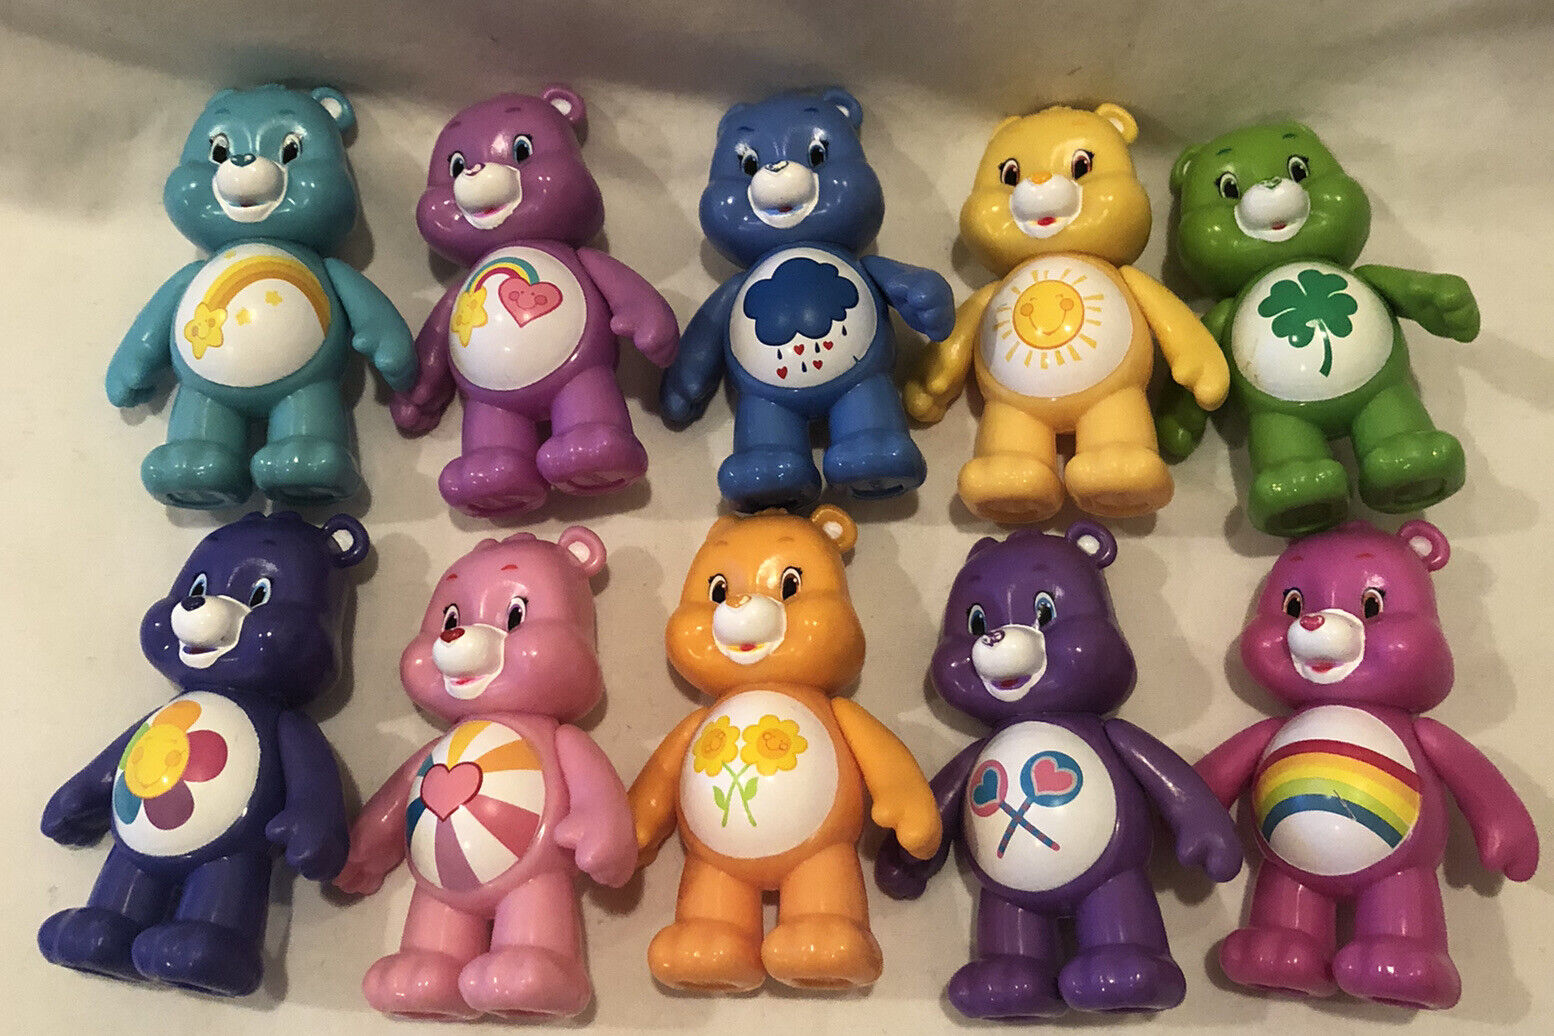 Care Bears Figures 5Pk Set Children Play Toy Collection